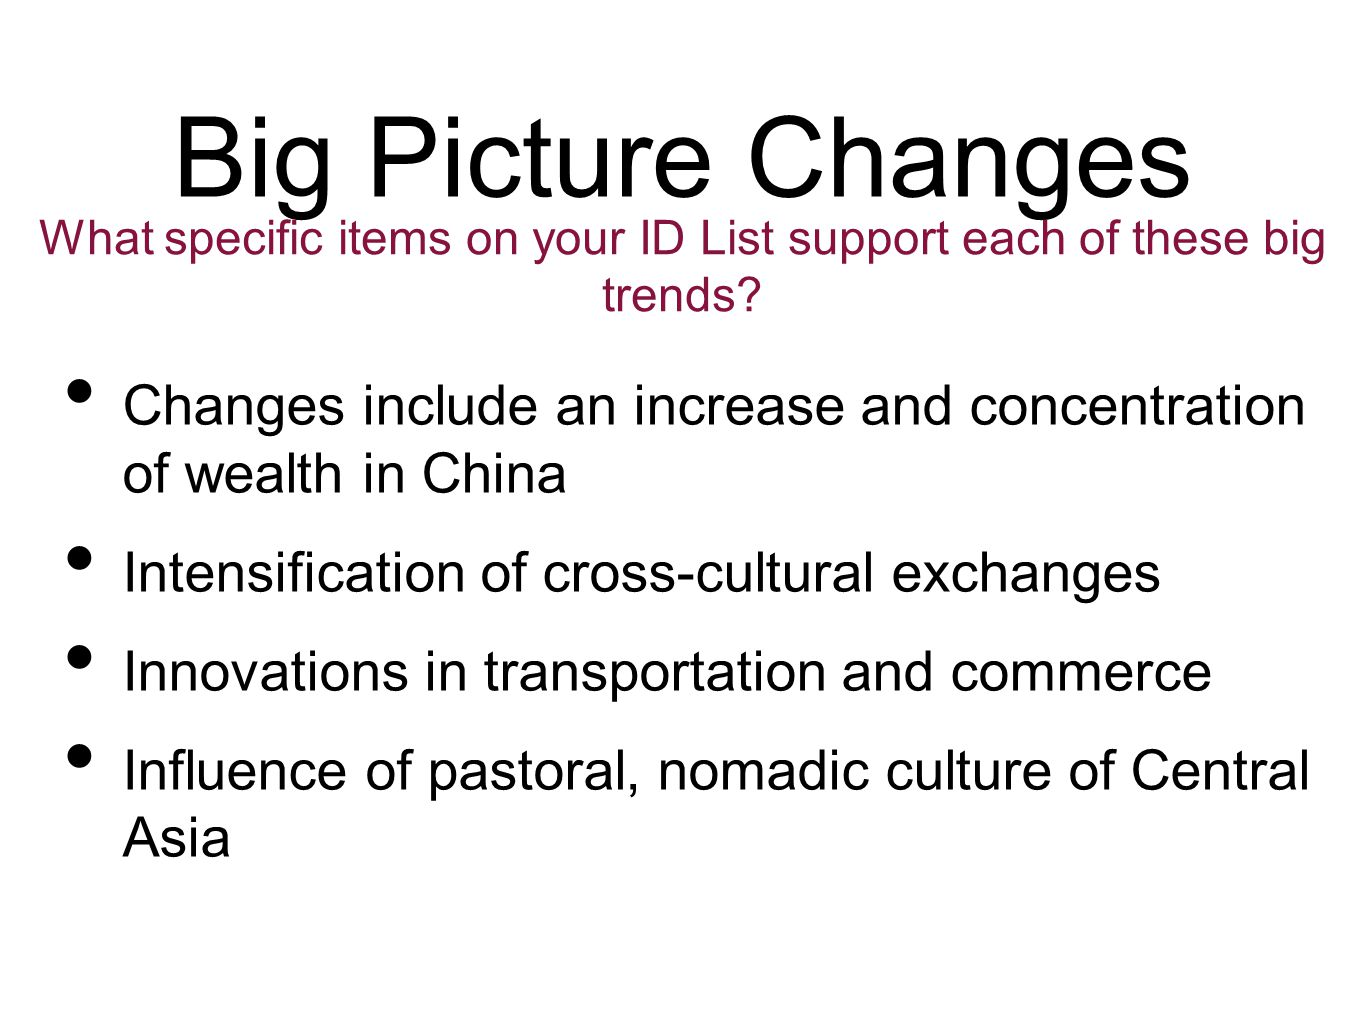 Big Picture Changes Changes include an increase and concentration of wealth in China Intensification of cross-cultural exchanges Innovations in transportation and commerce Influence of pastoral, nomadic culture of Central Asia What specific items on your ID List support each of these big trends?